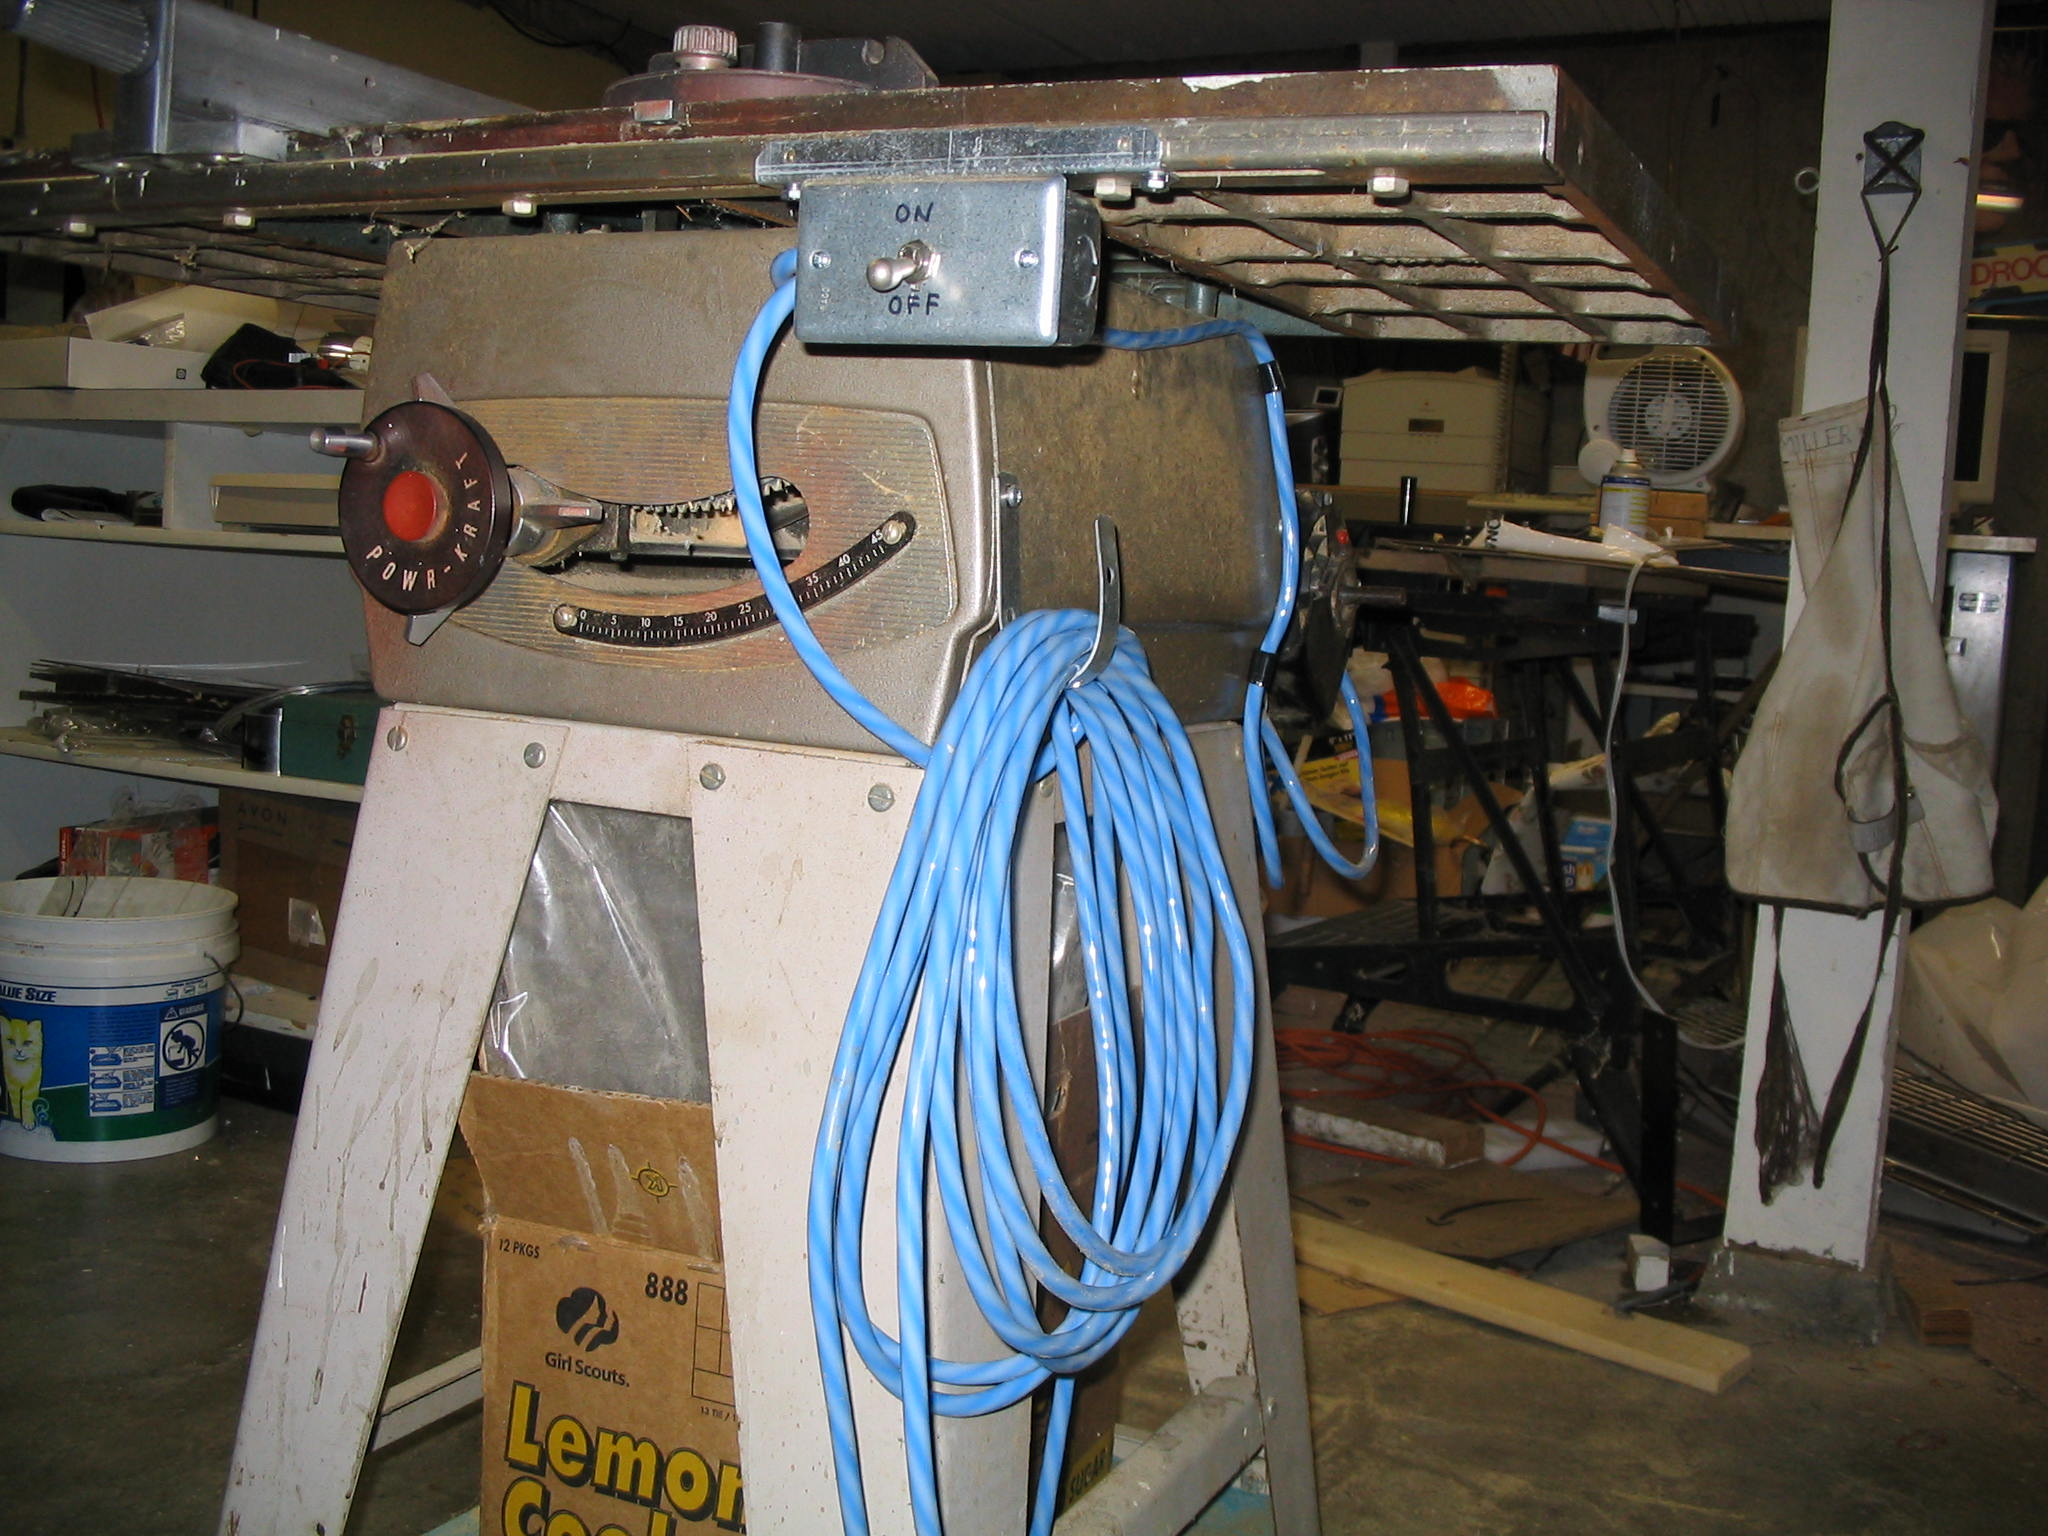 Tablesaw wiring repair bolis new switch and wiring greentooth